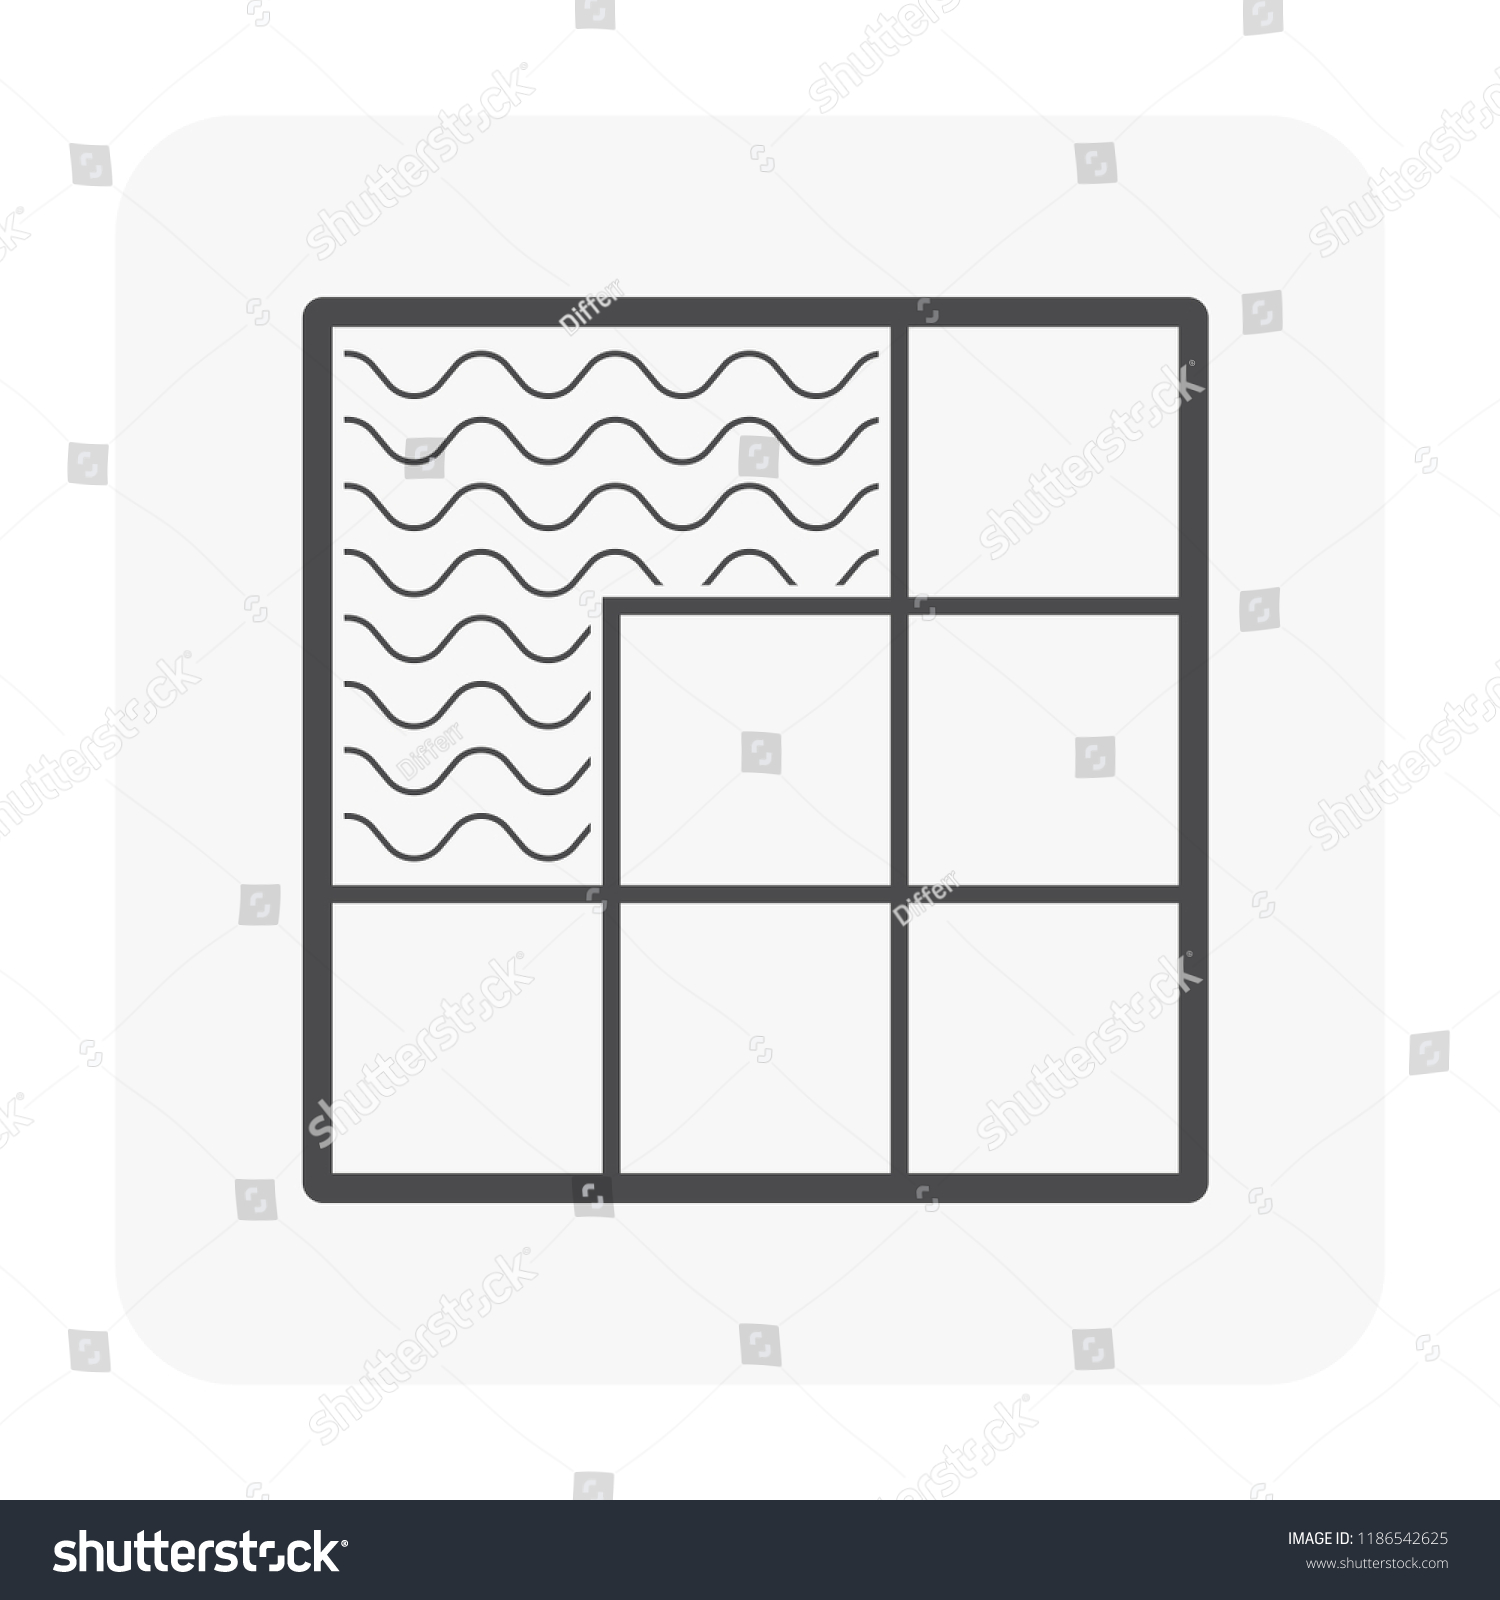 hight resolution of tile floor installation and material icon